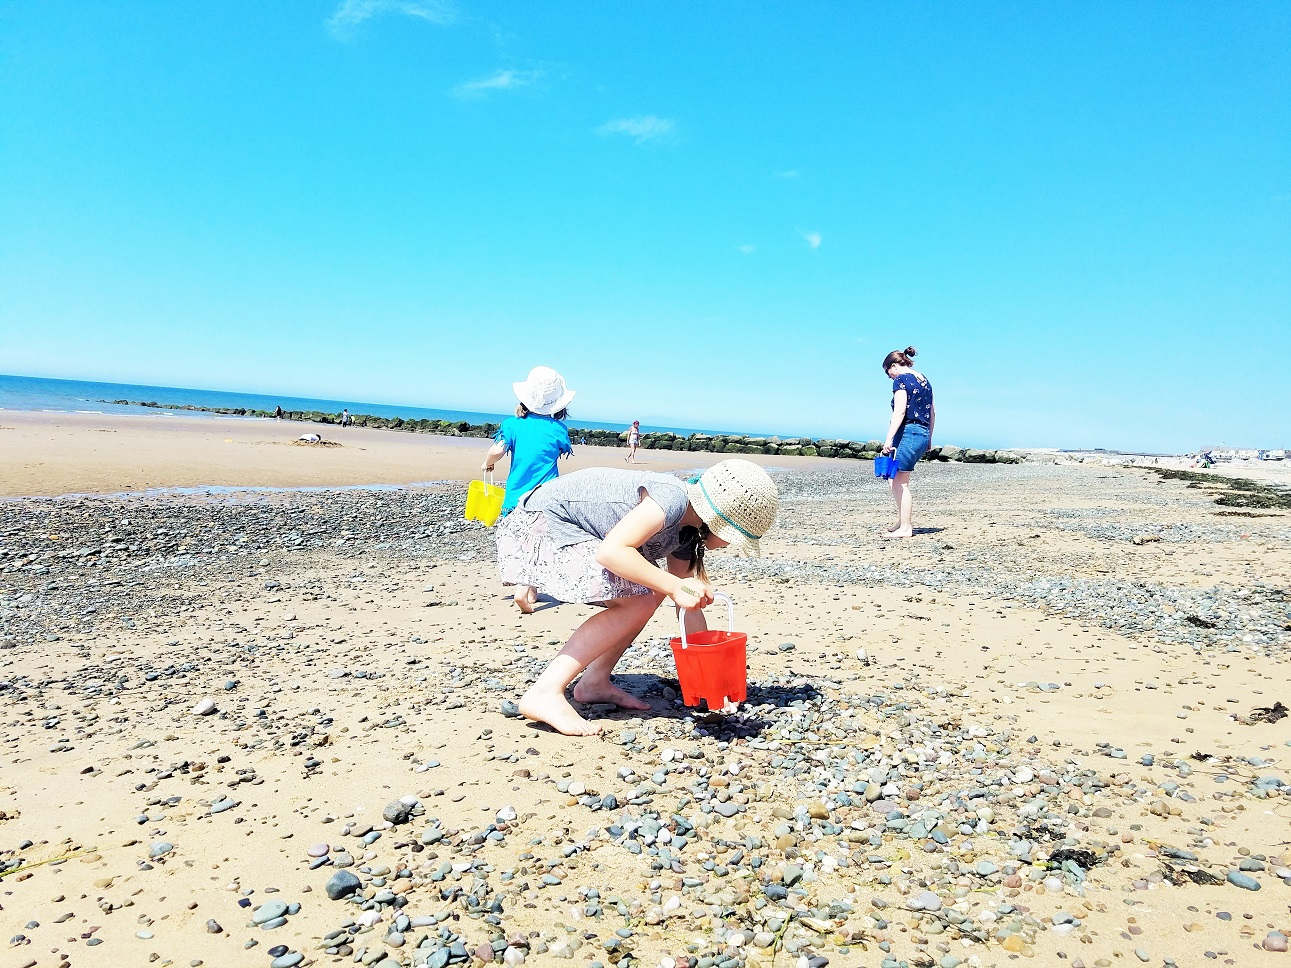 The kids are listening - why you should be careful what you say in front of your children - kids collecting shells on the beach